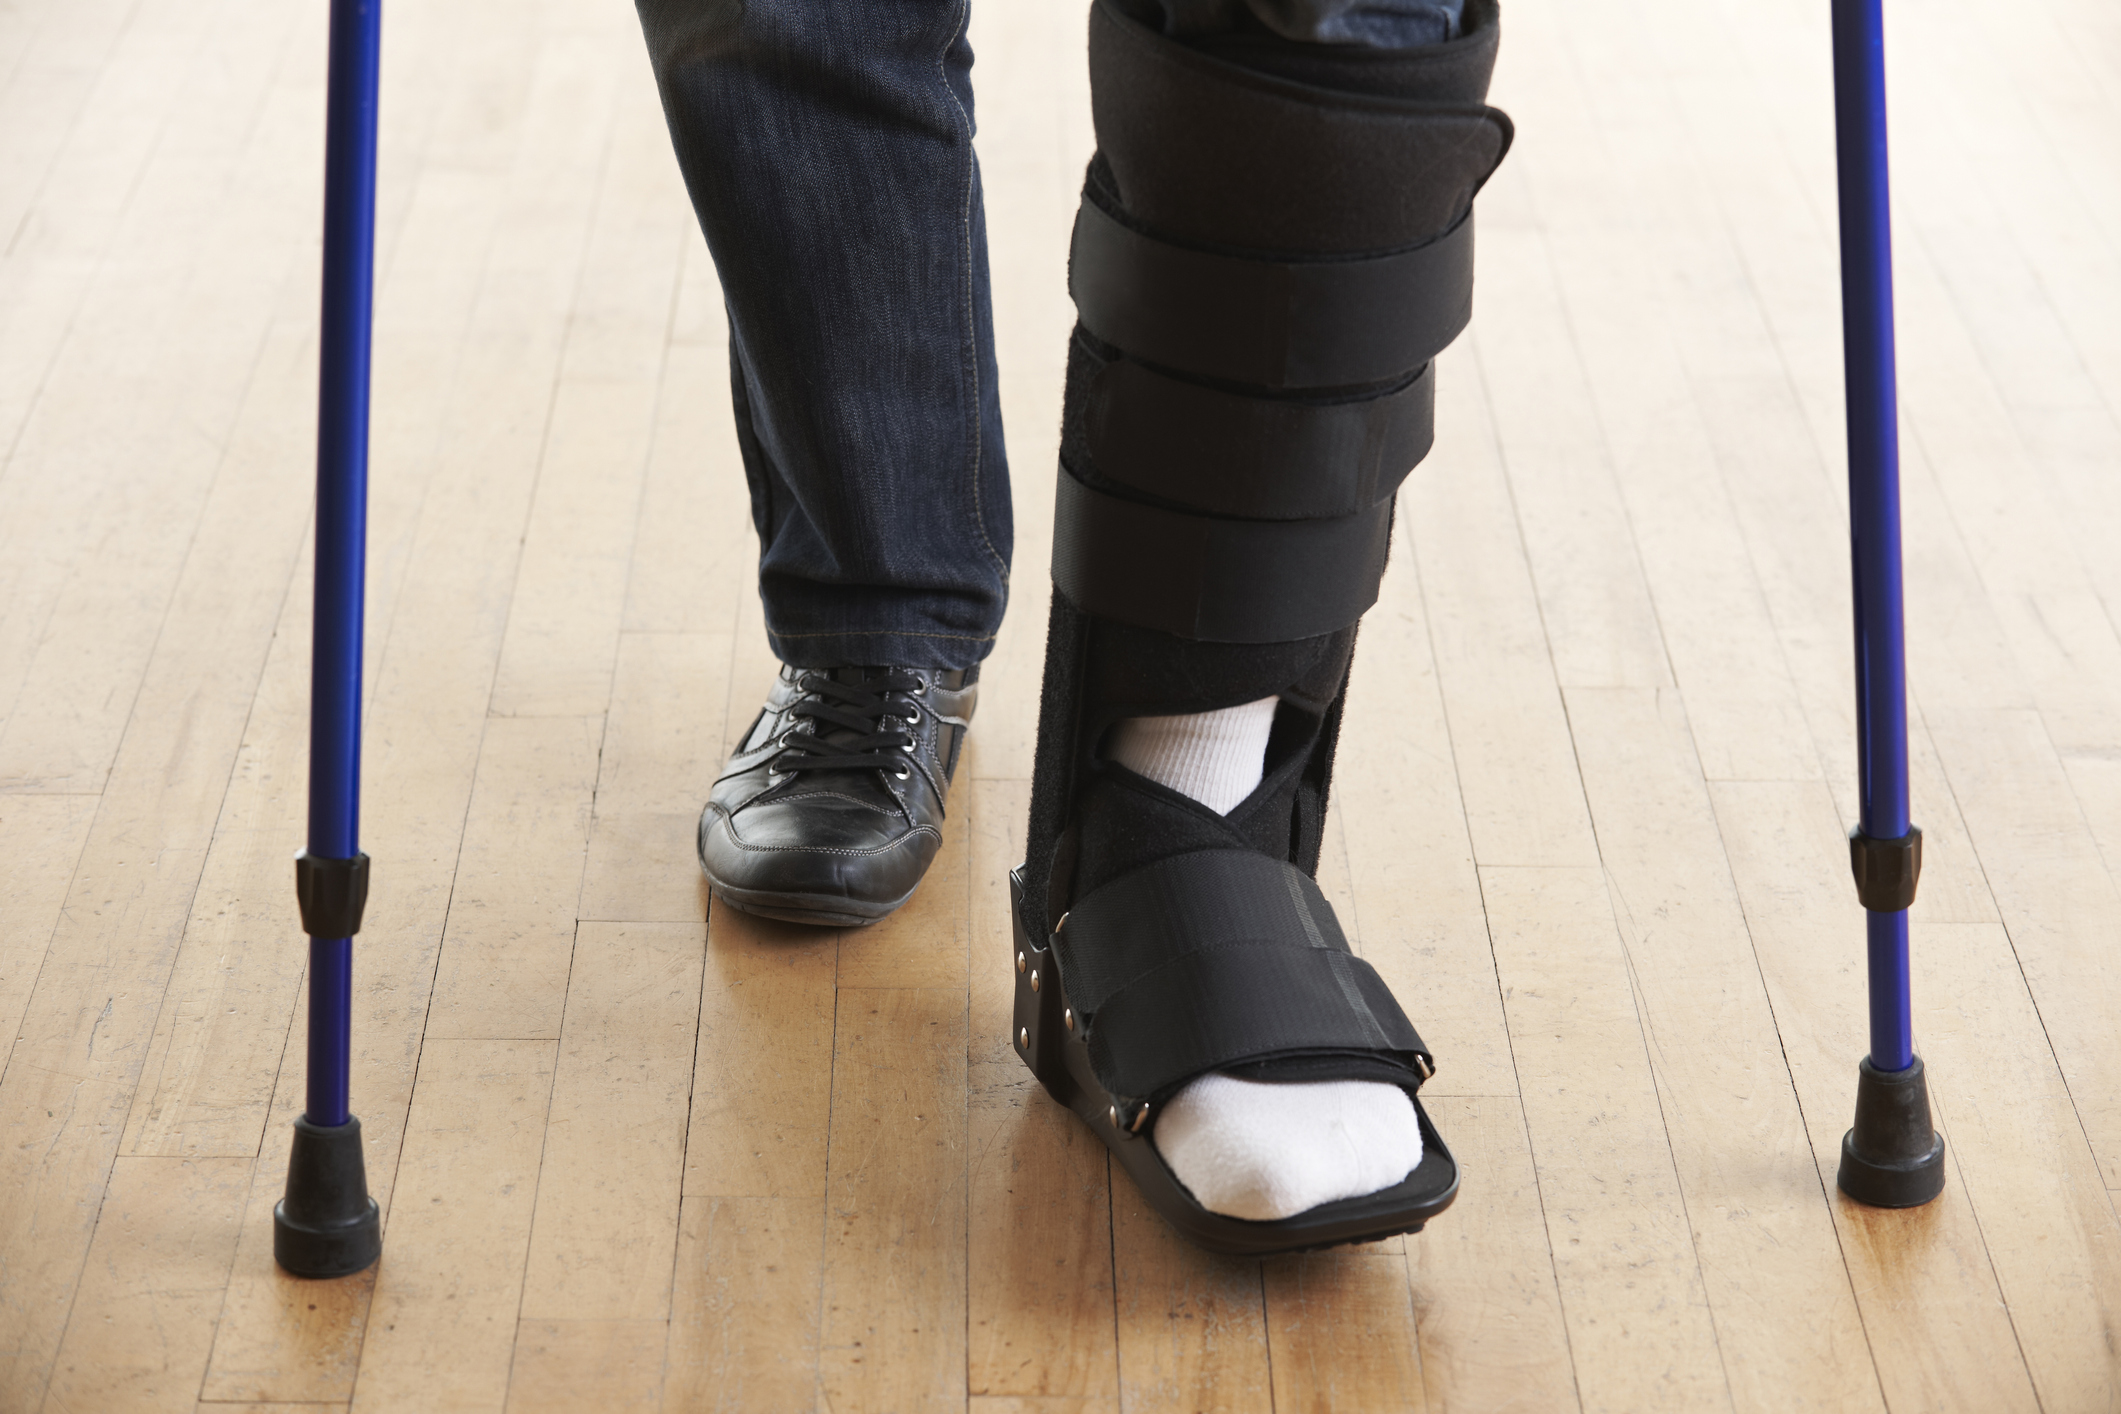 Westlake Legal Group iStock-483561839 Influencer defends faking broken ankle for flight upgrade Janine Puhak fox-news/travel/general/airlines fox-news/travel fox-news/lifestyle fox-news/fitness-and-wellbeing fox news fnc/travel fnc bba80a56-fa41-5b9b-a989-6d03925fd4f2 article